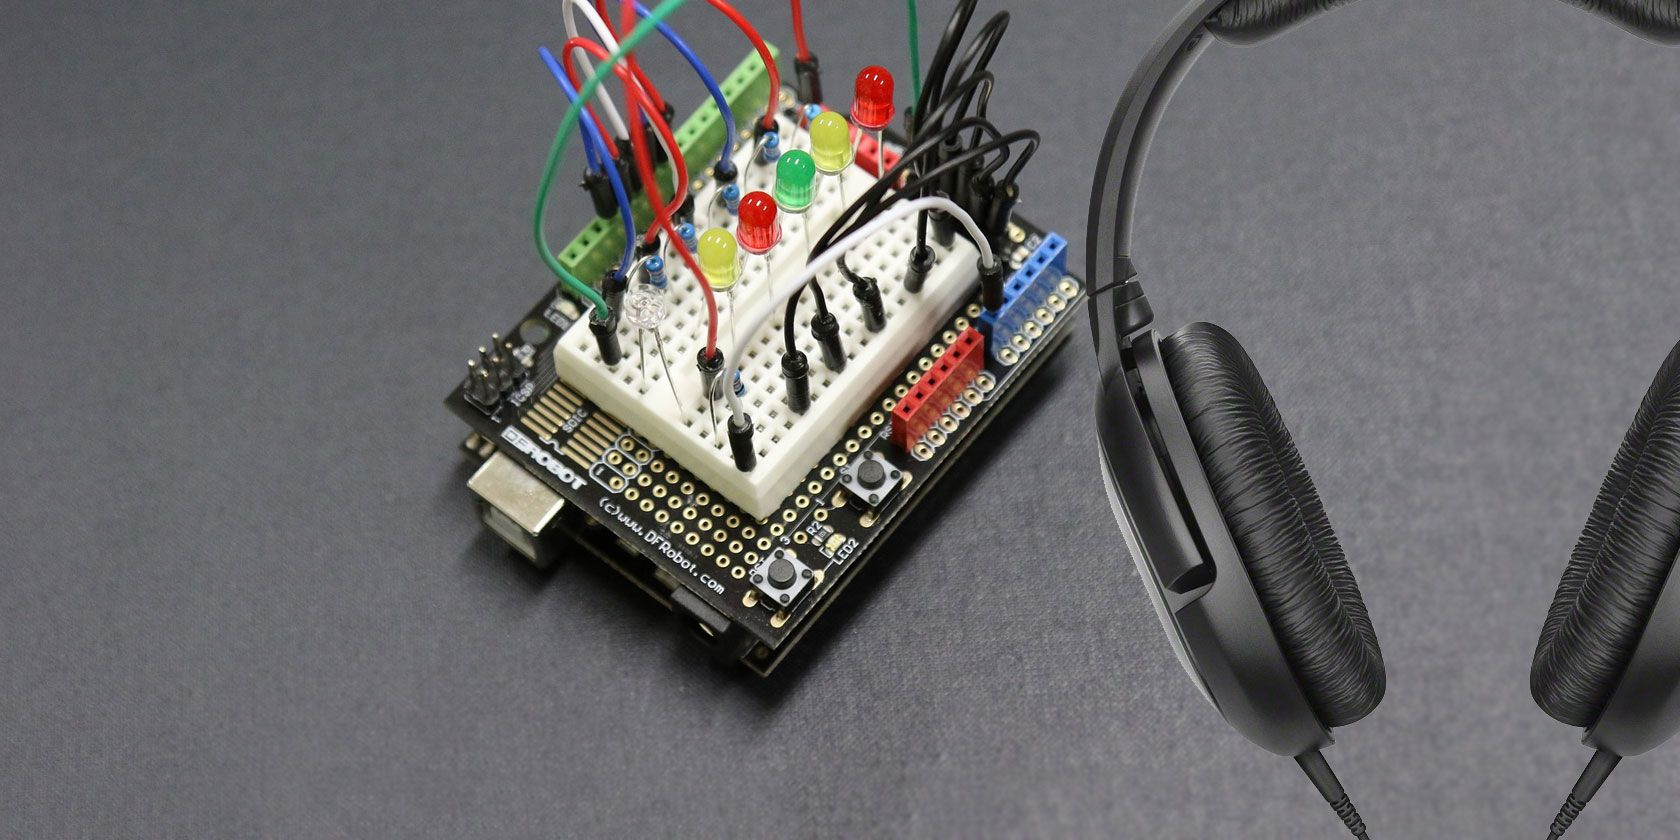 diy-arduino-cool-projects